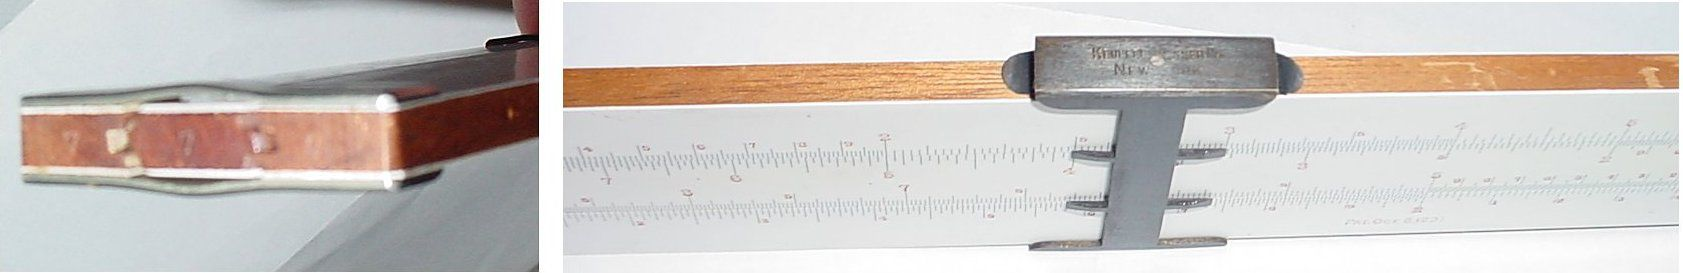 Architects Scale Ruler For Graphics Design Multi Ratio Measure Scale 5Scales